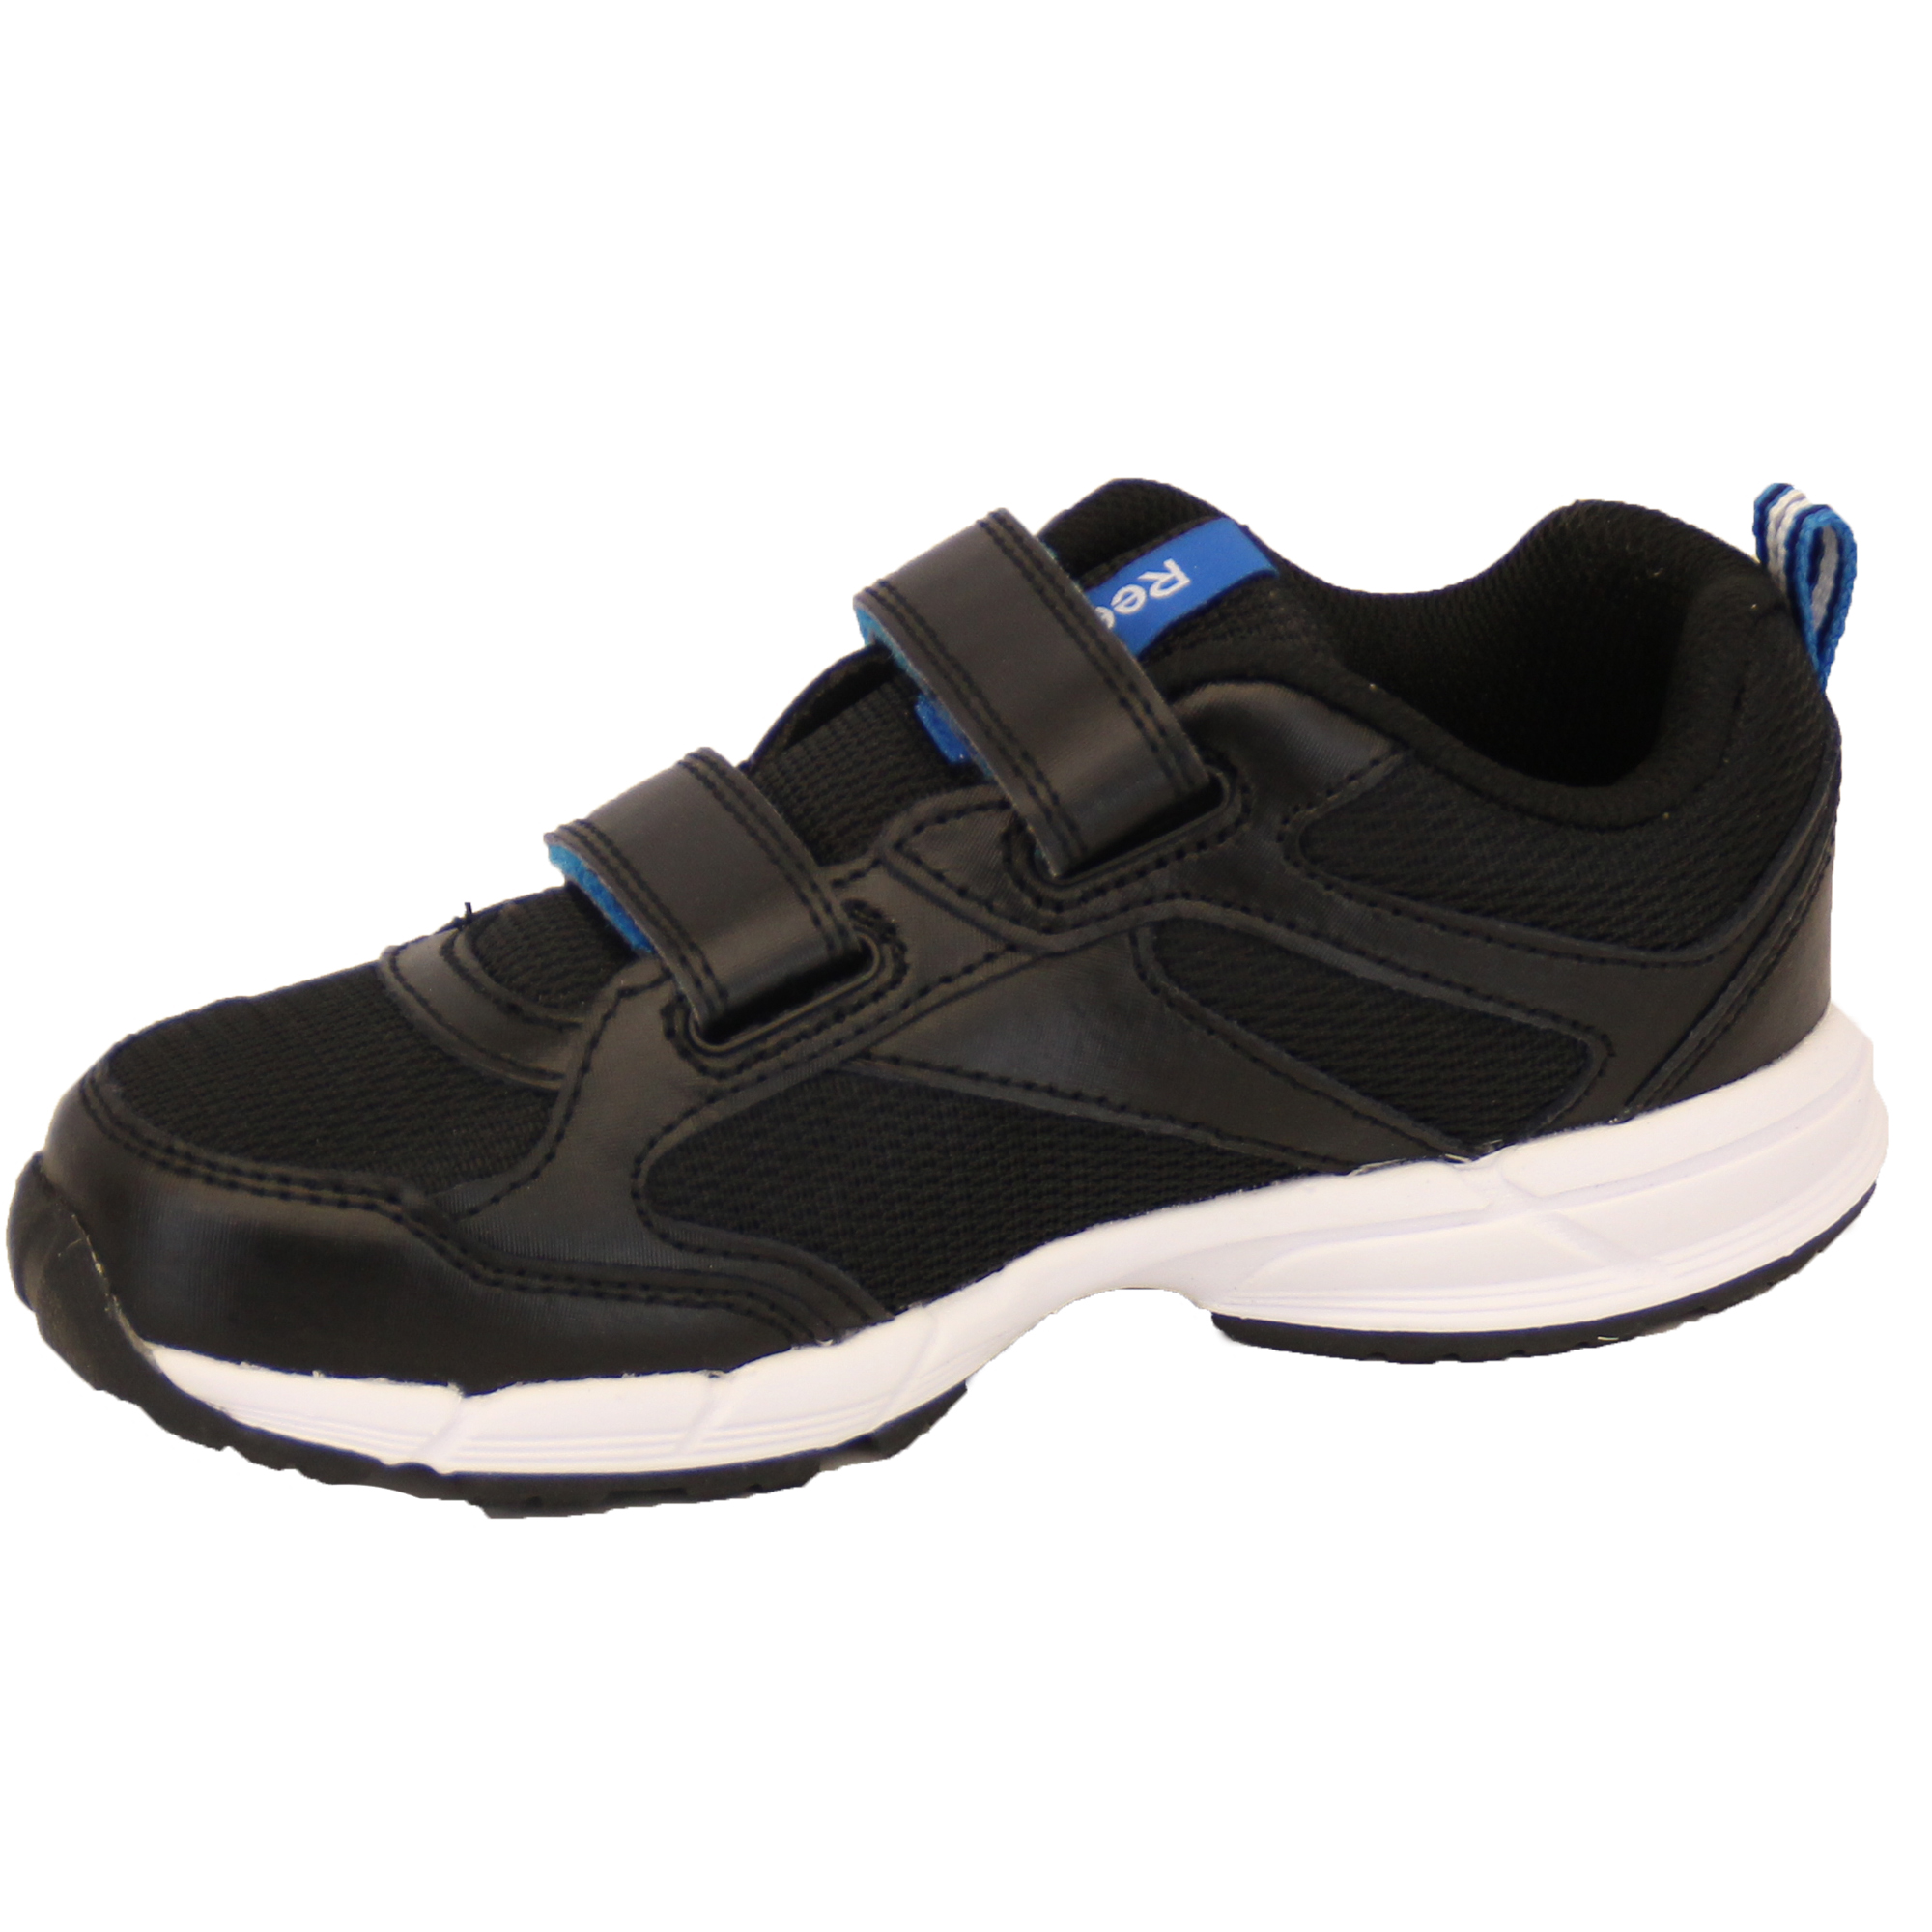 Shoes for kids - discount Clarks childrens shoes online and kids shoes from Startrite, Buckle my Shoe, Richter, Dinosoles and many other branded children's.